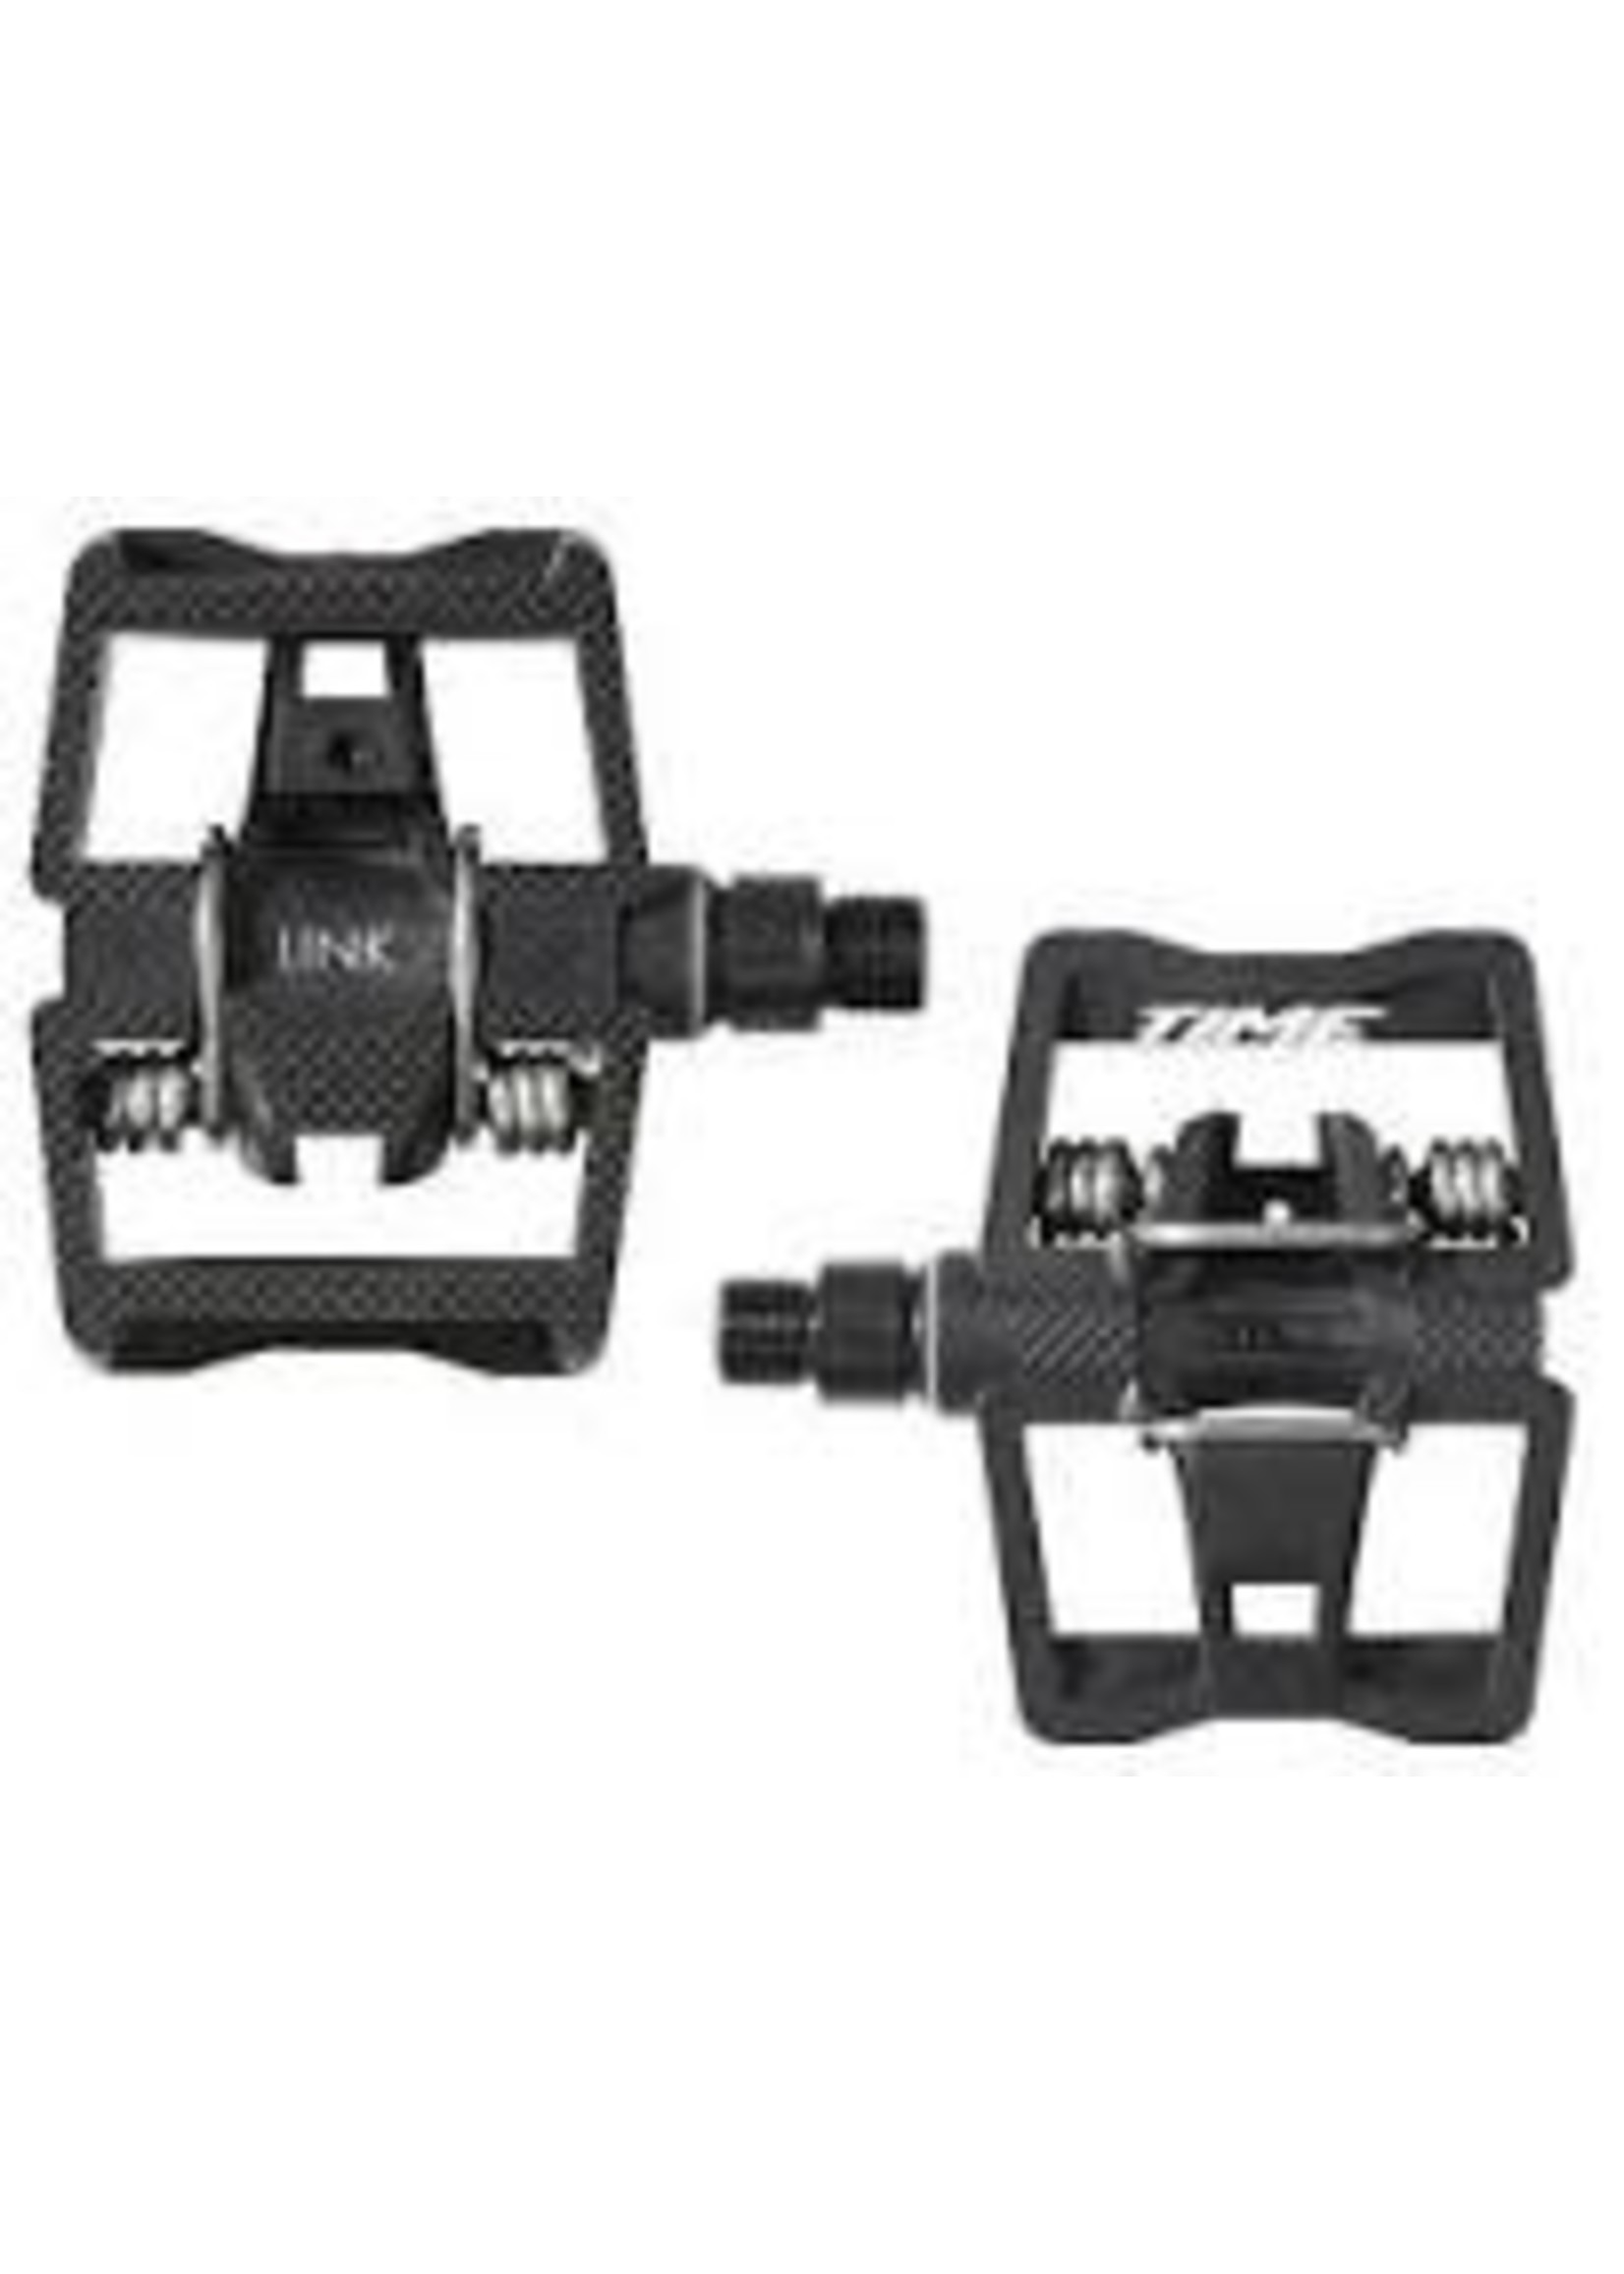 Time Time Link pedals ATAC easy